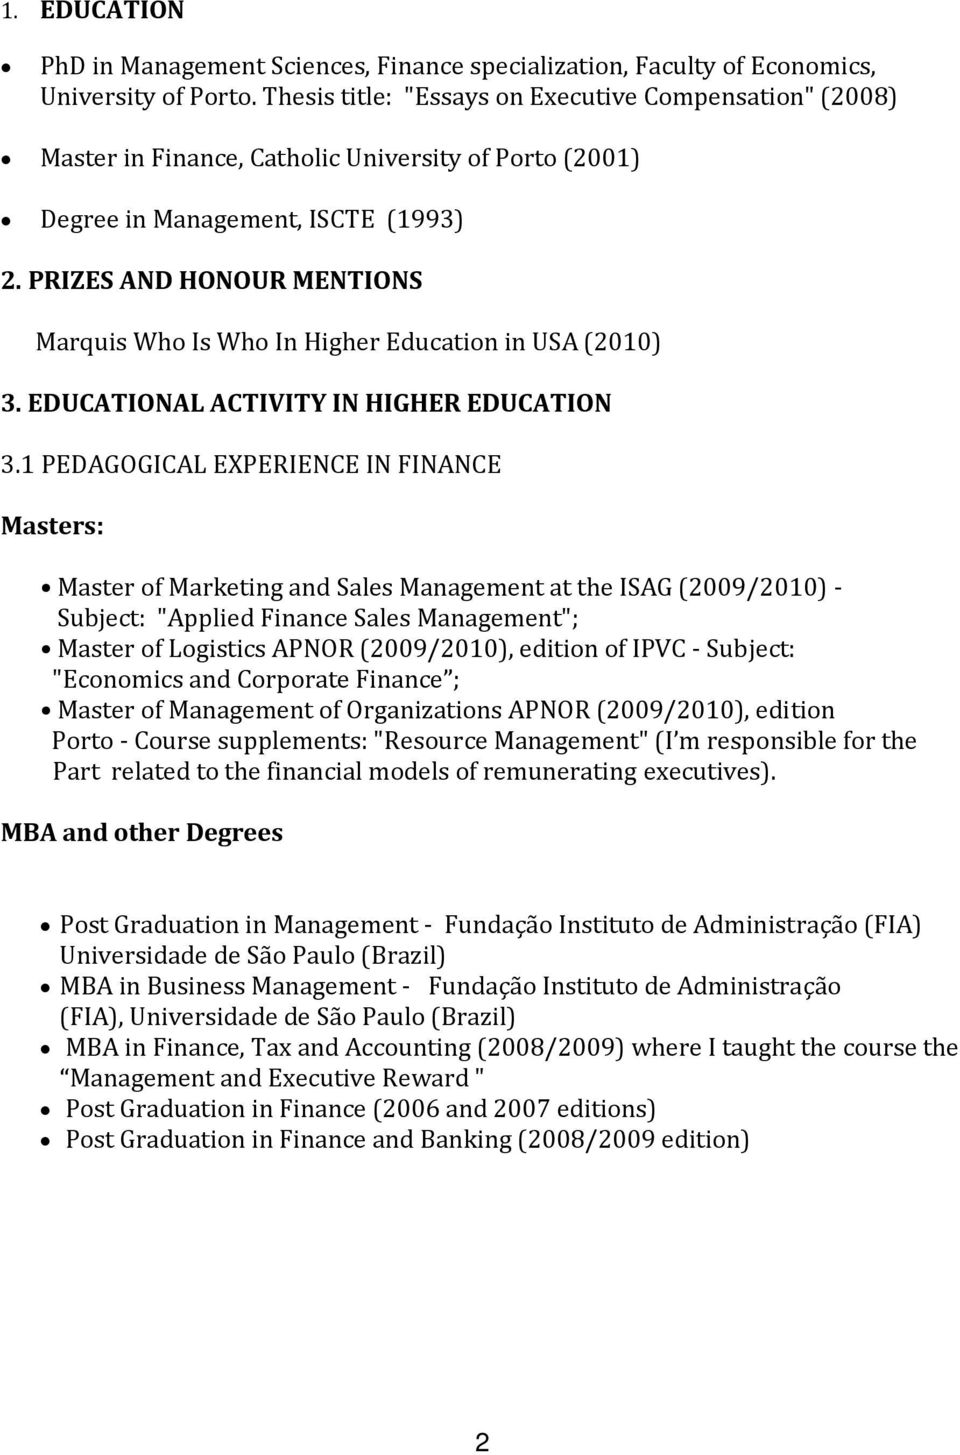 PRIZES AND HONOUR MENTIONS Marquis Who Is Who In Higher Education in USA (2010) 3. EDUCATIONAL ACTIVITY IN HIGHER EDUCATION 3.